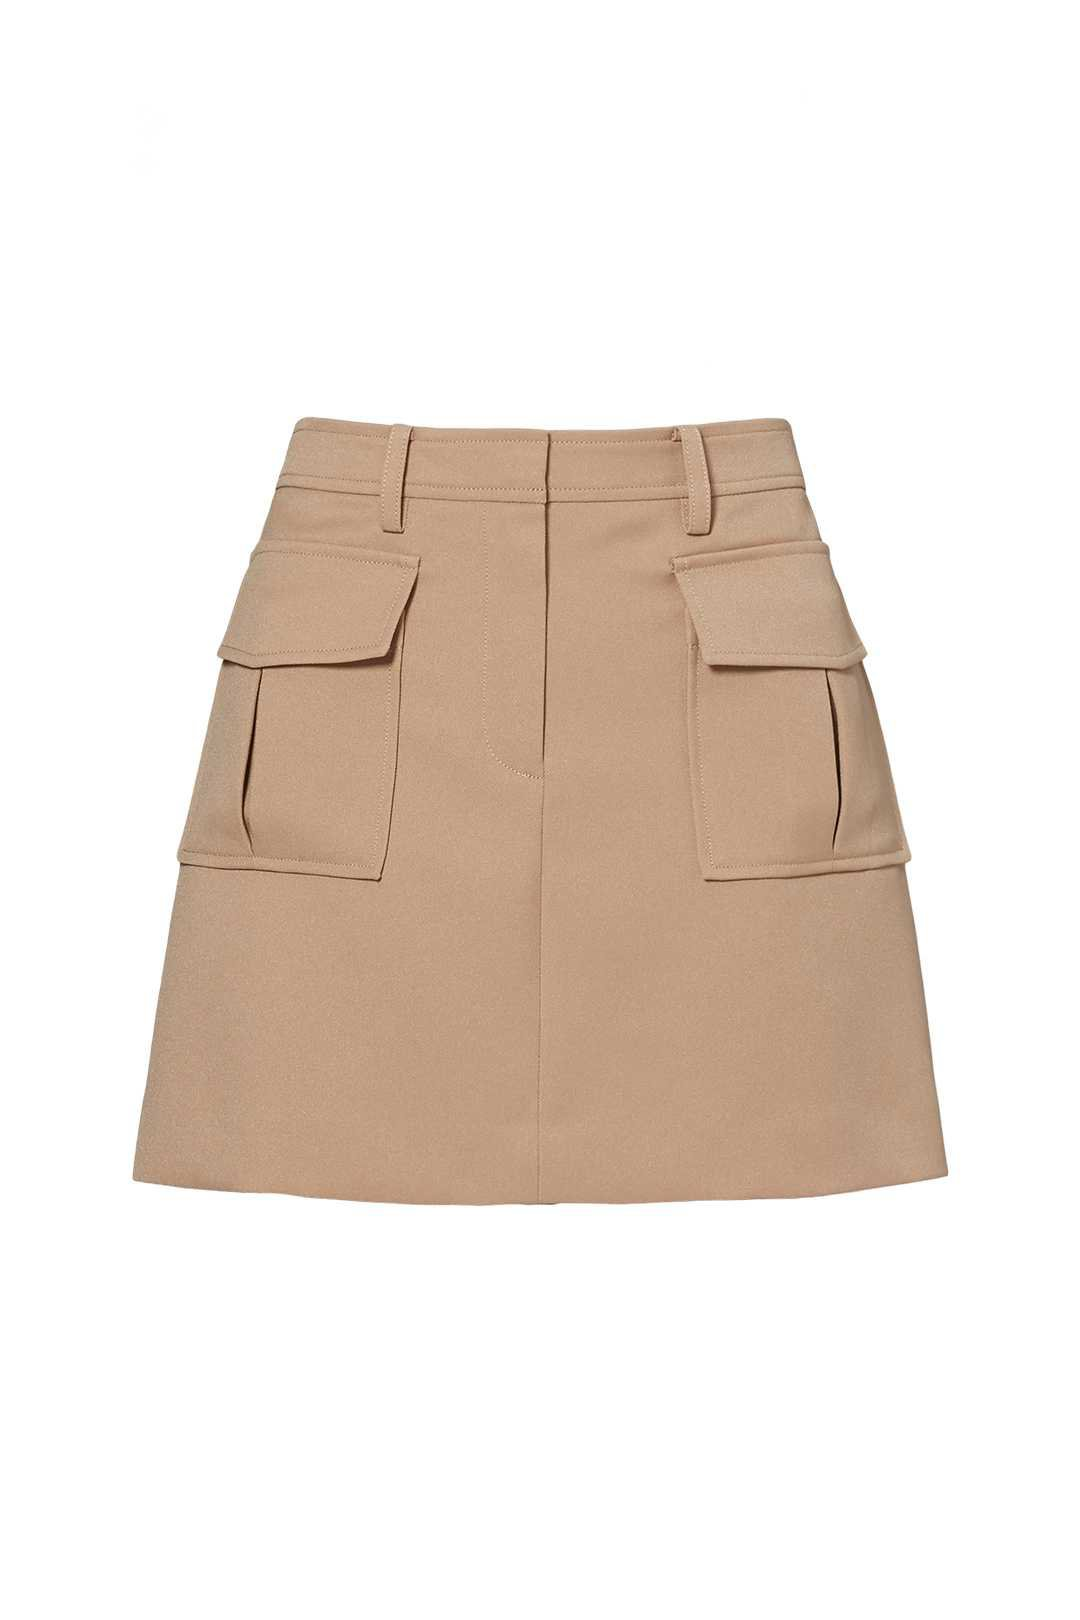 Beige Mini Military Skirt by Theory for $45   Rent the Runway